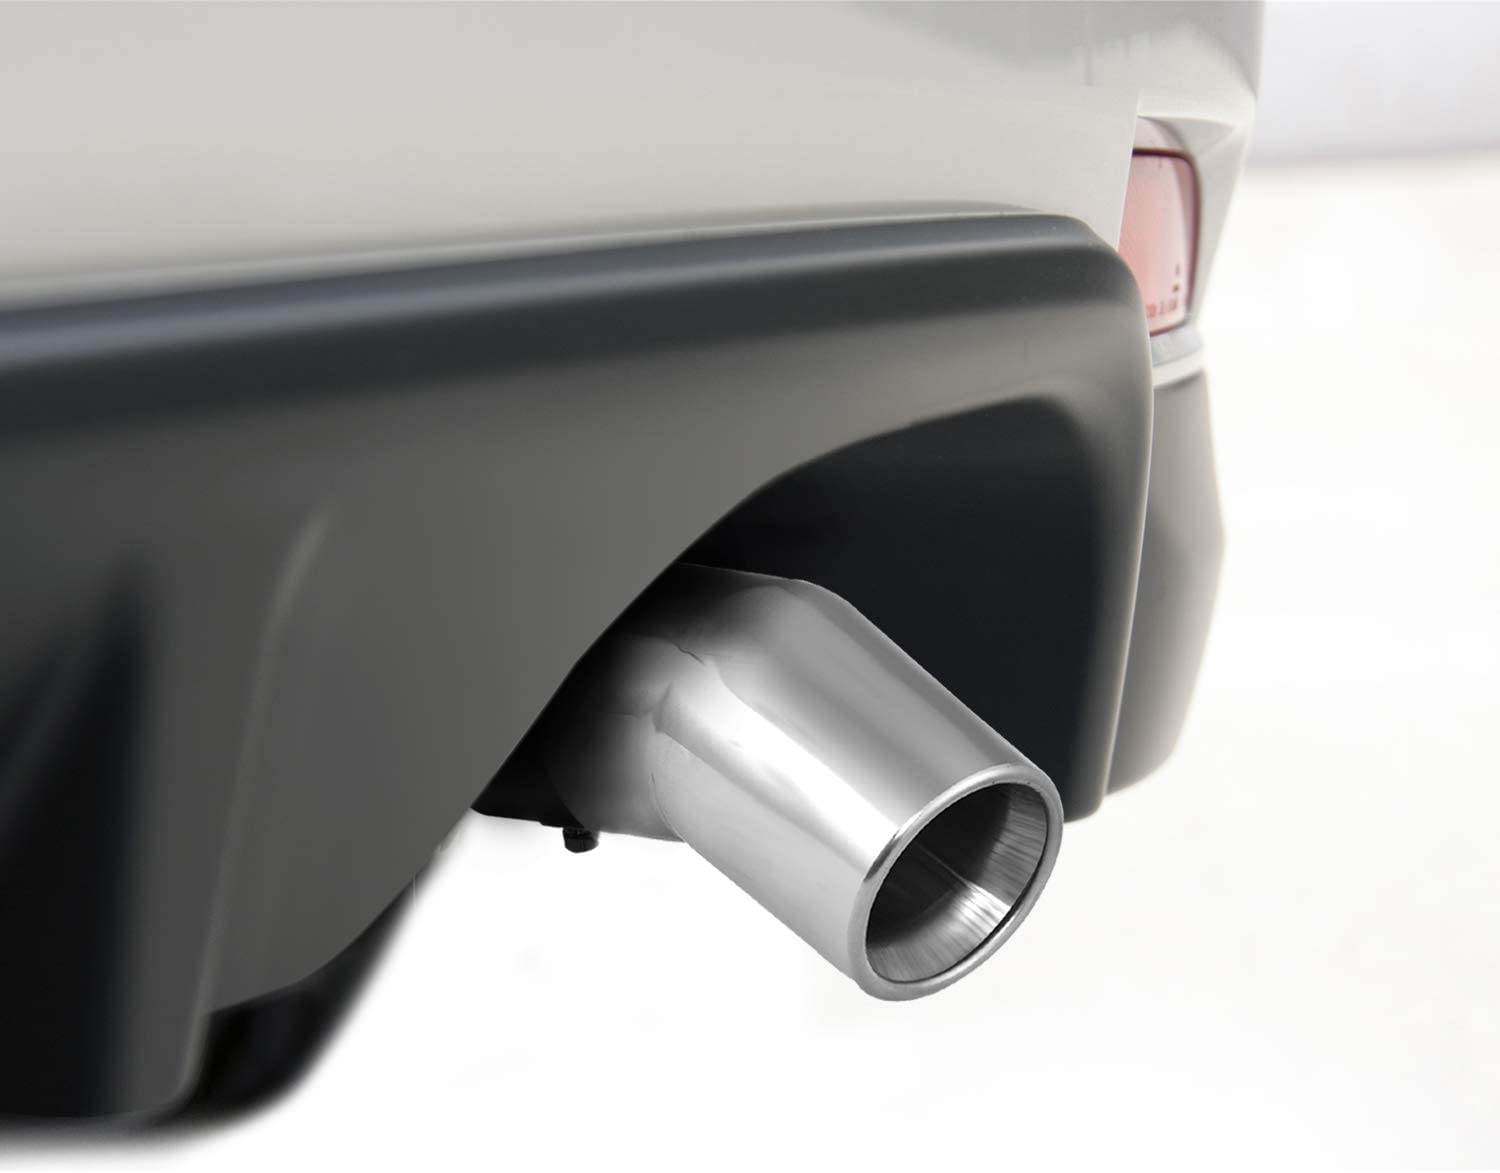 Car Muffler Tips Stainless Steel to give Chrome Effect Exhaust tip to Fit 1.5 to 2 Inch Exhaust Tail Pipe Diameter